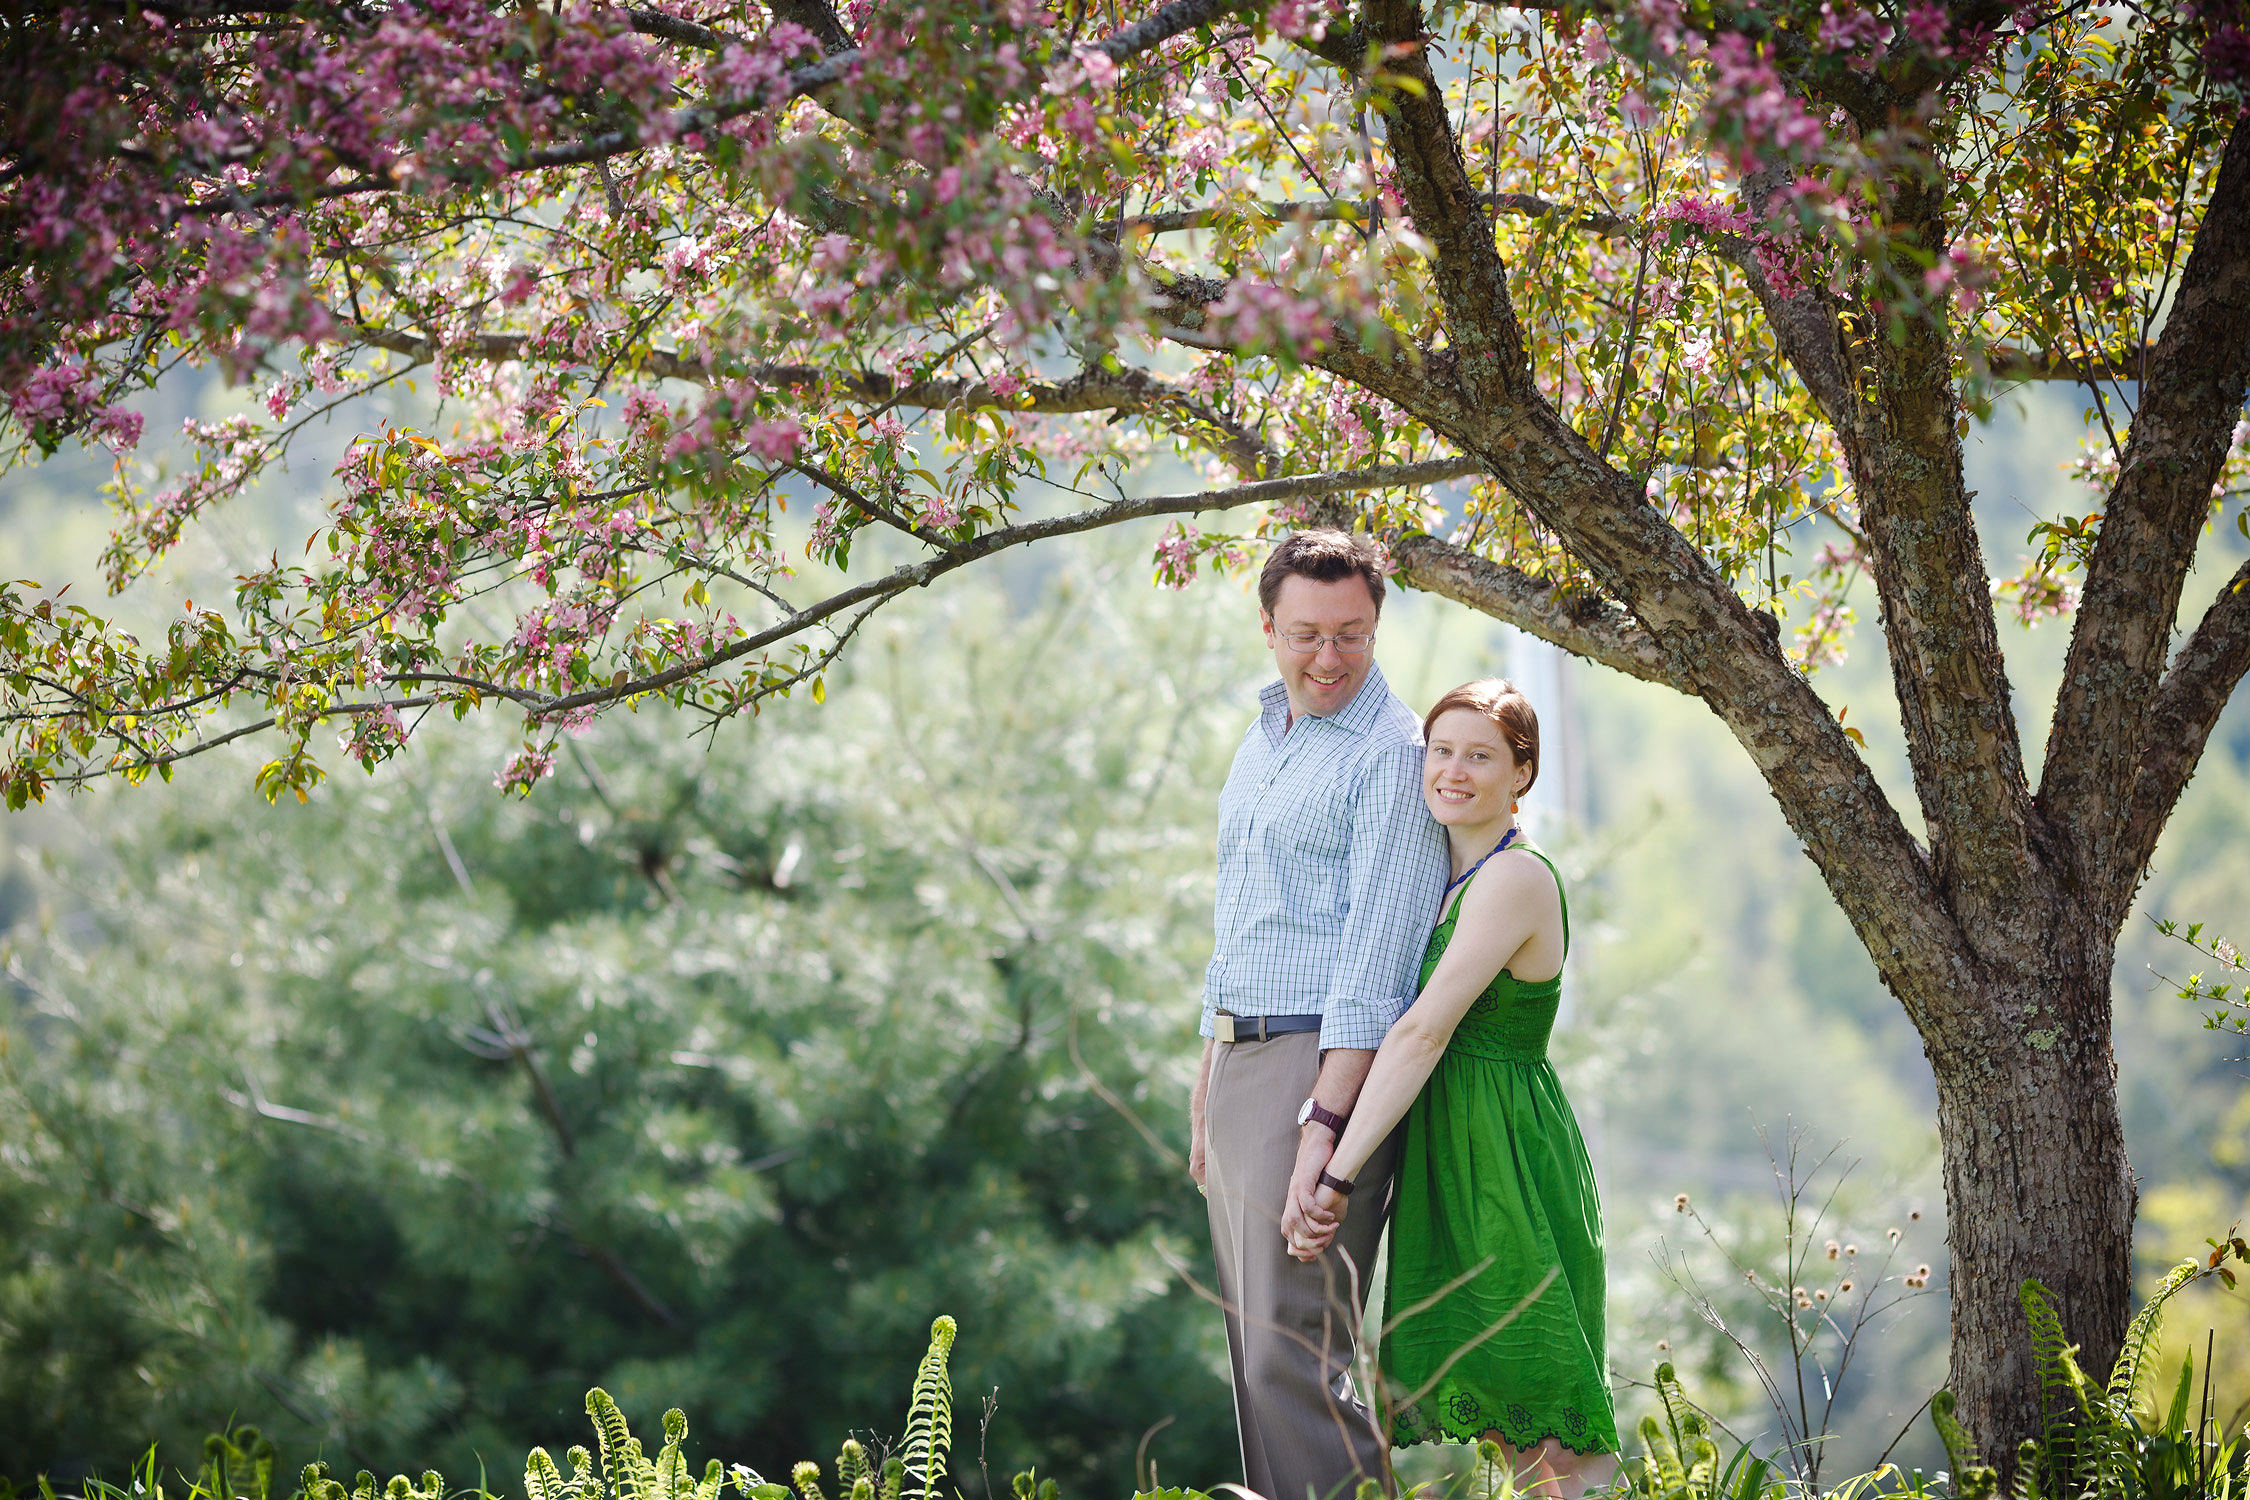 A couple poses under the pink blooms of an apple tree at the Karma Choling Meditation Center during an engagement session by Vermont wedding photographer Stina Booth